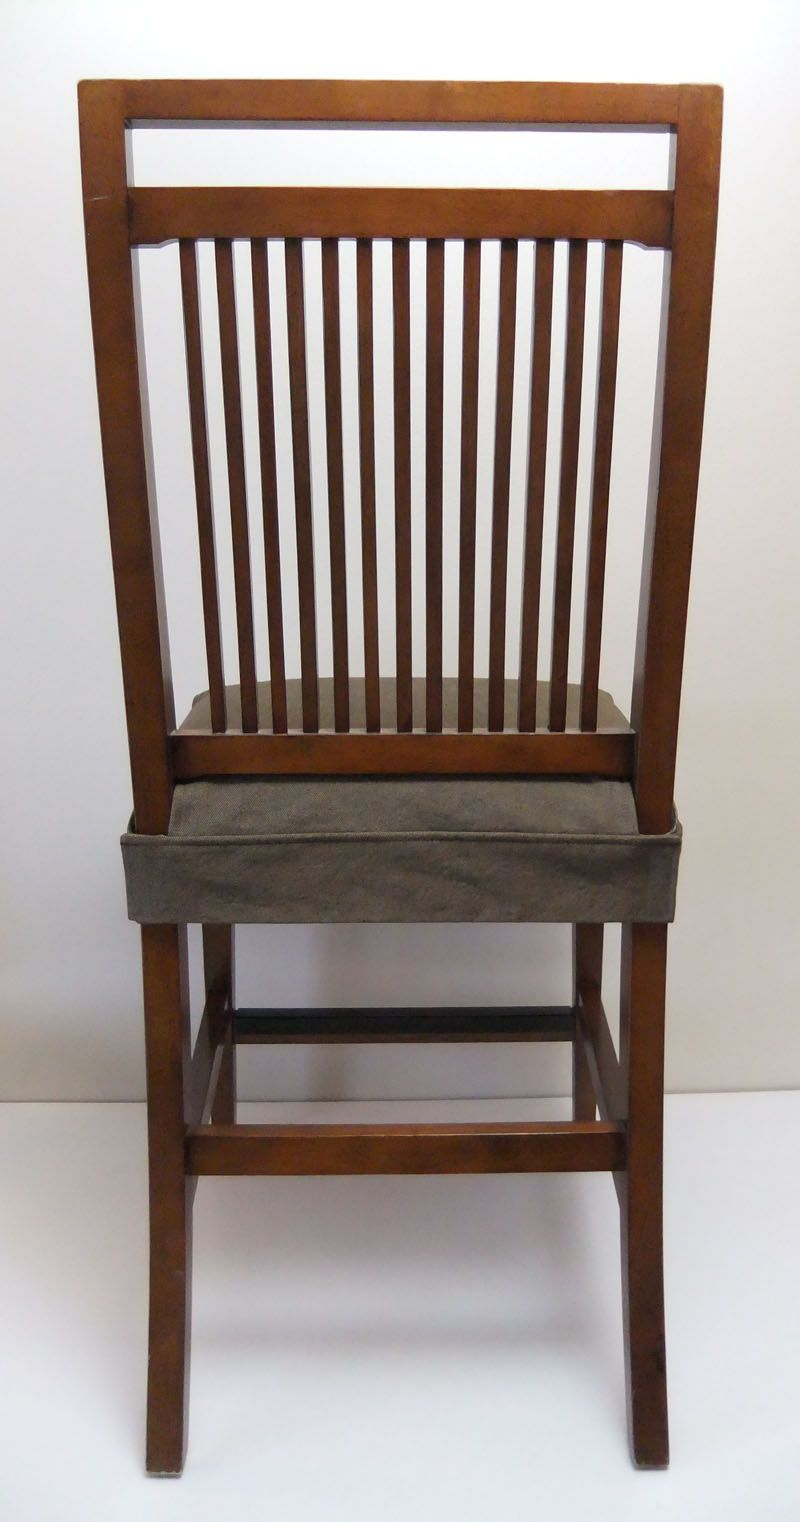 Dining Chair Seat Cover, Smooth And Flat On Back. Nicely Tailored In Brown  Denim